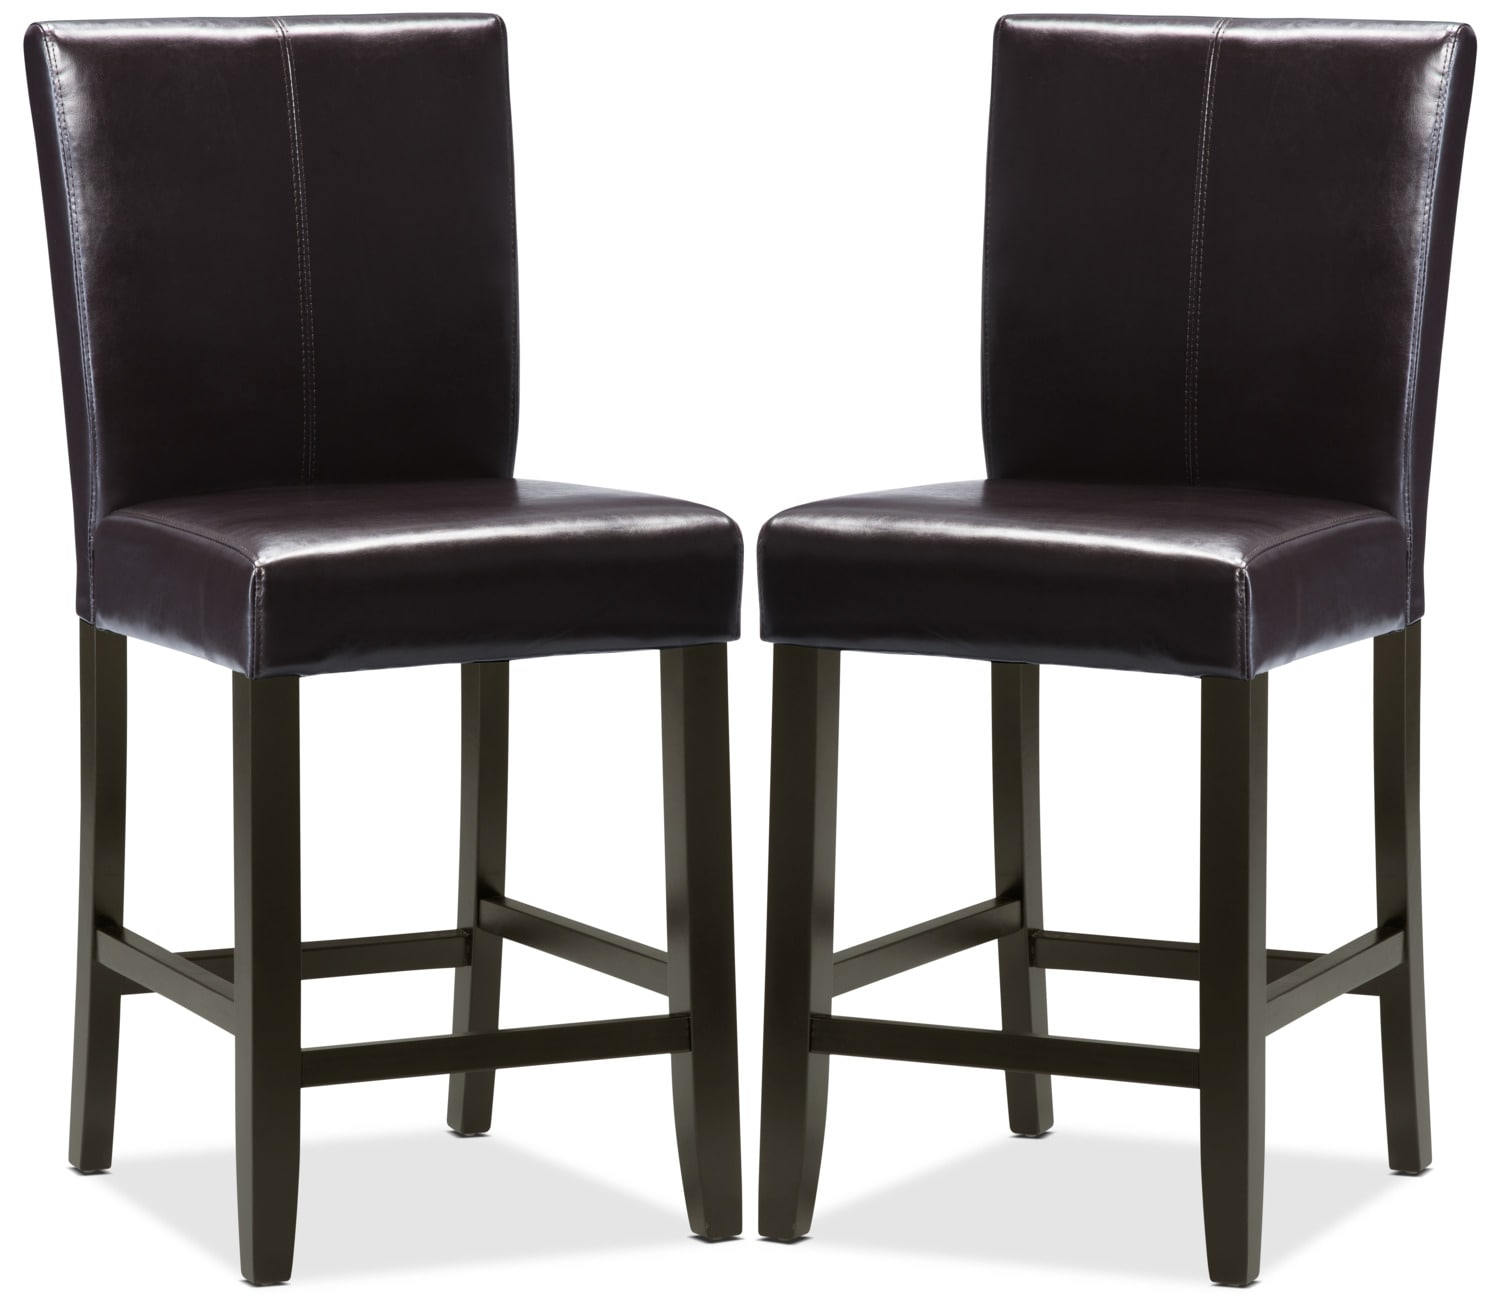 Kendall Brown Accent Counter Chairs, Set of 2